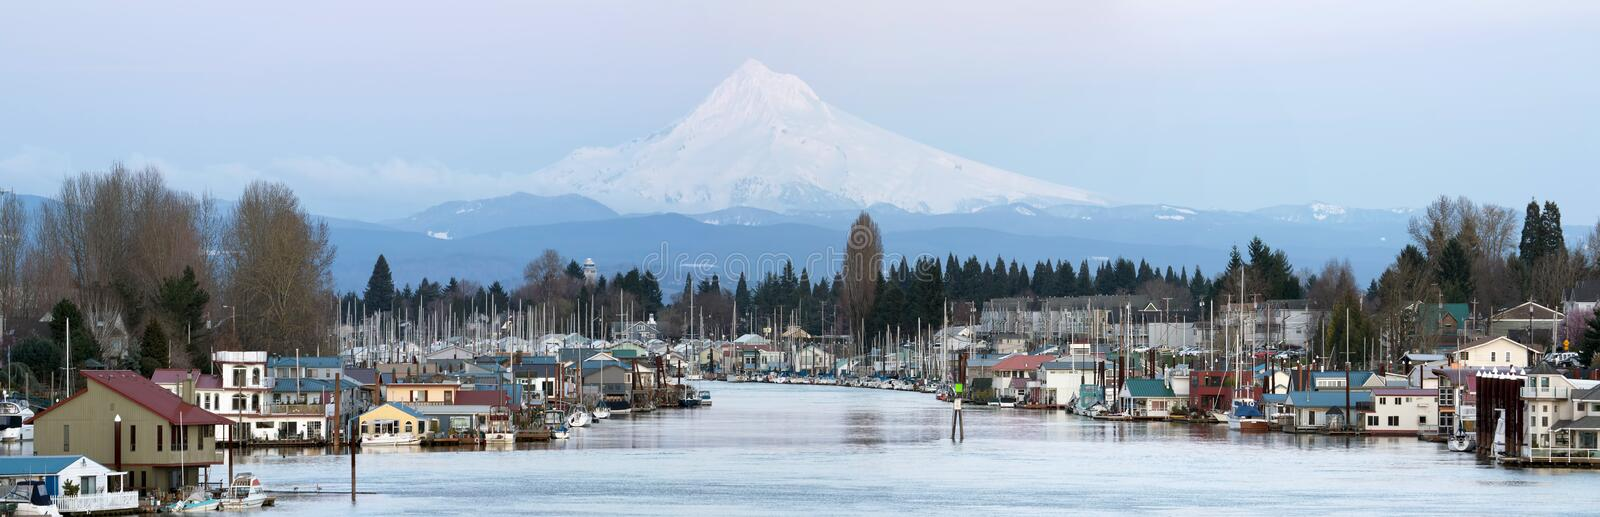 Boat Houses Along Columbia River and Mount Hood stock photos